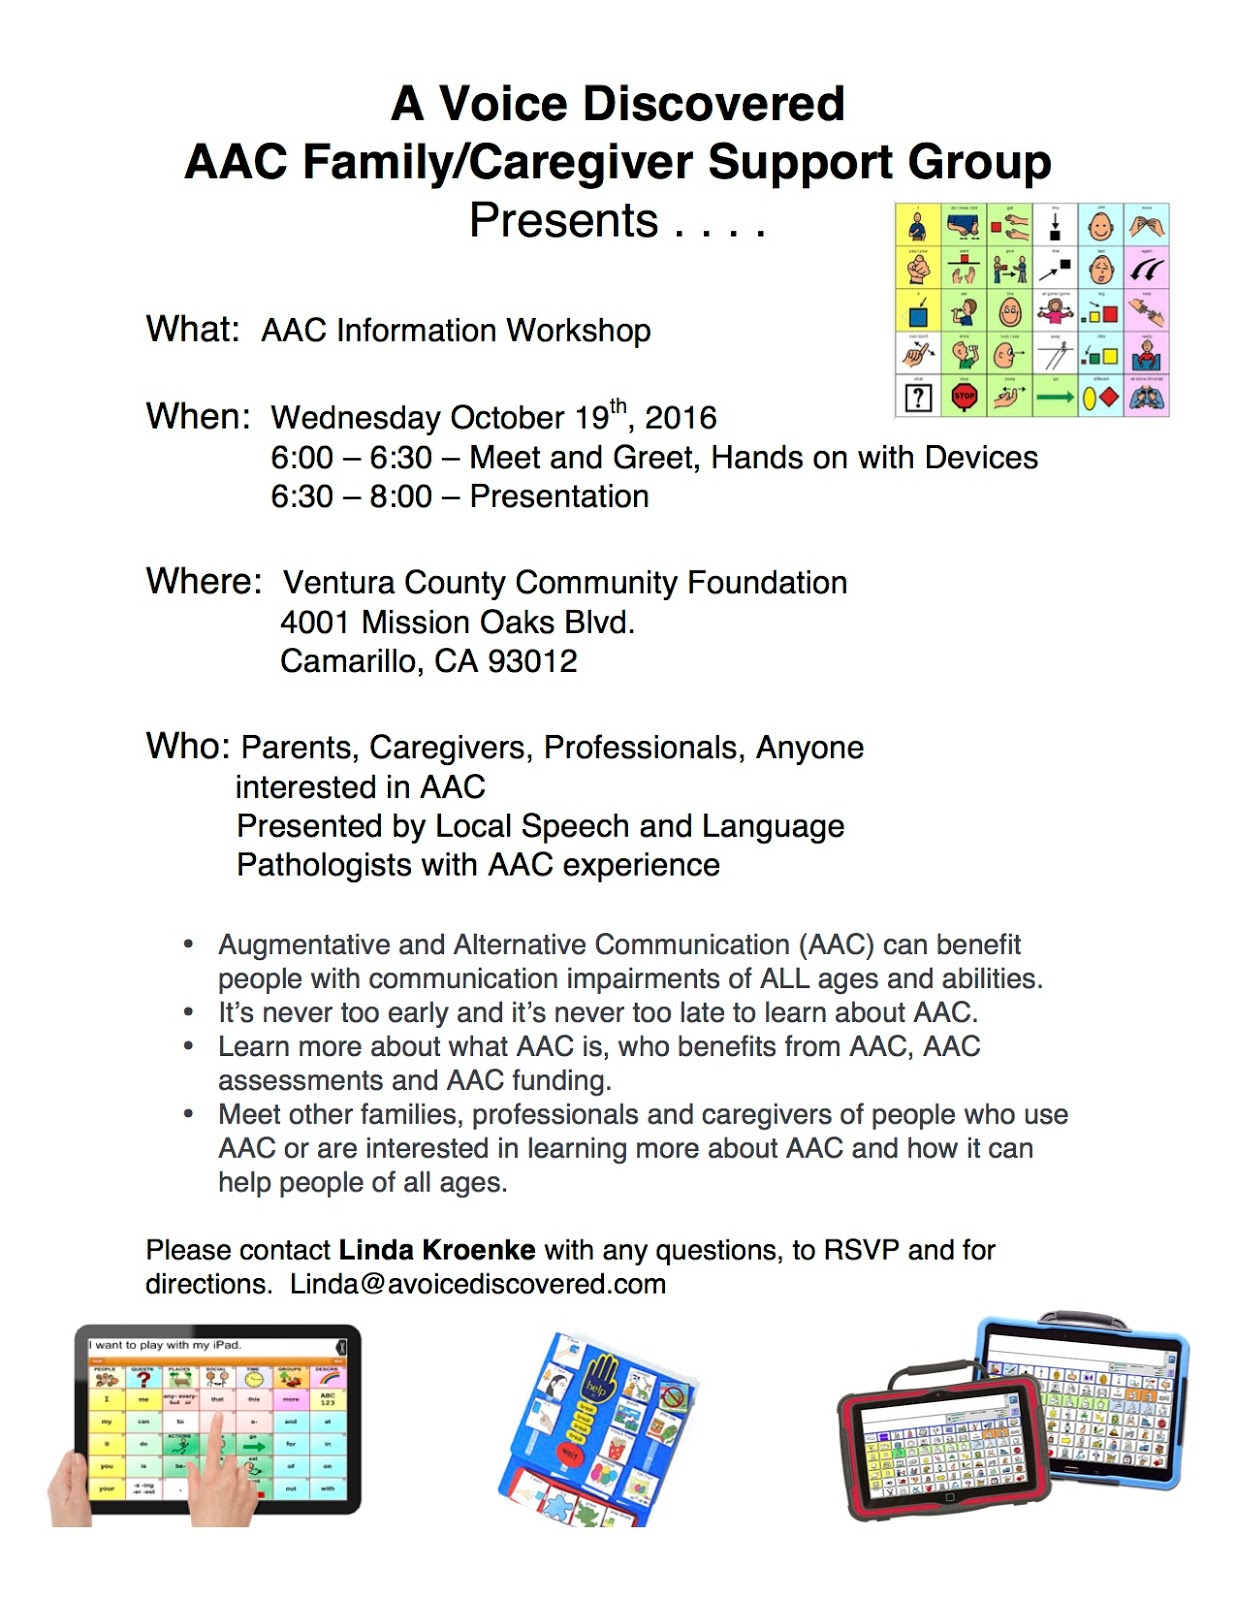 SCAAC-N: AAC Information Workshop (Camarillo, 10/19/16)